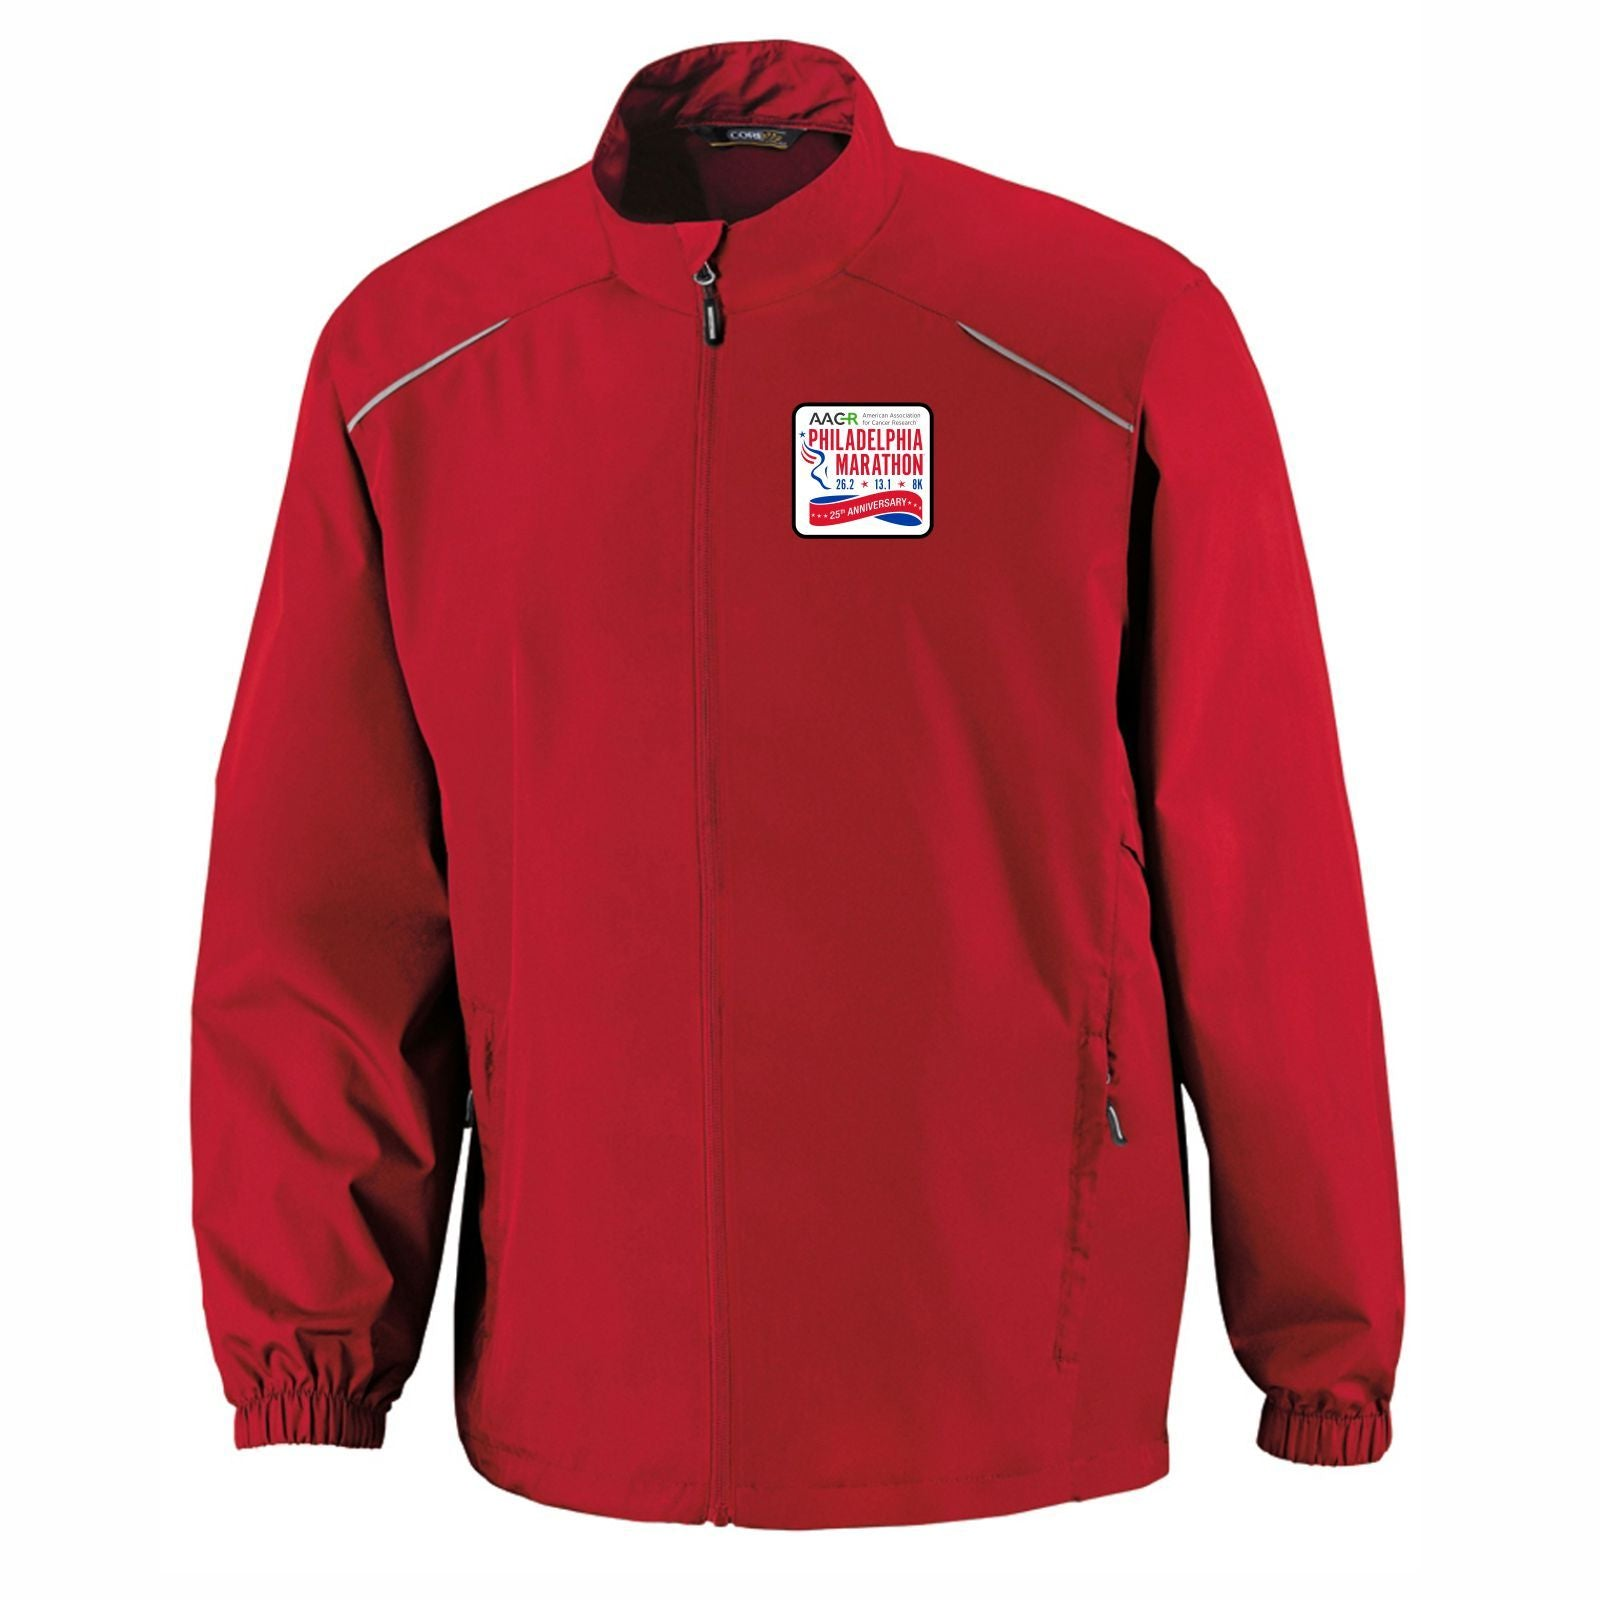 AACR Philadelphia Marathon '25th Anniversary Left Chest Embroidered Patch' Men's Tech Lightweight Full Zip Jacket - Red